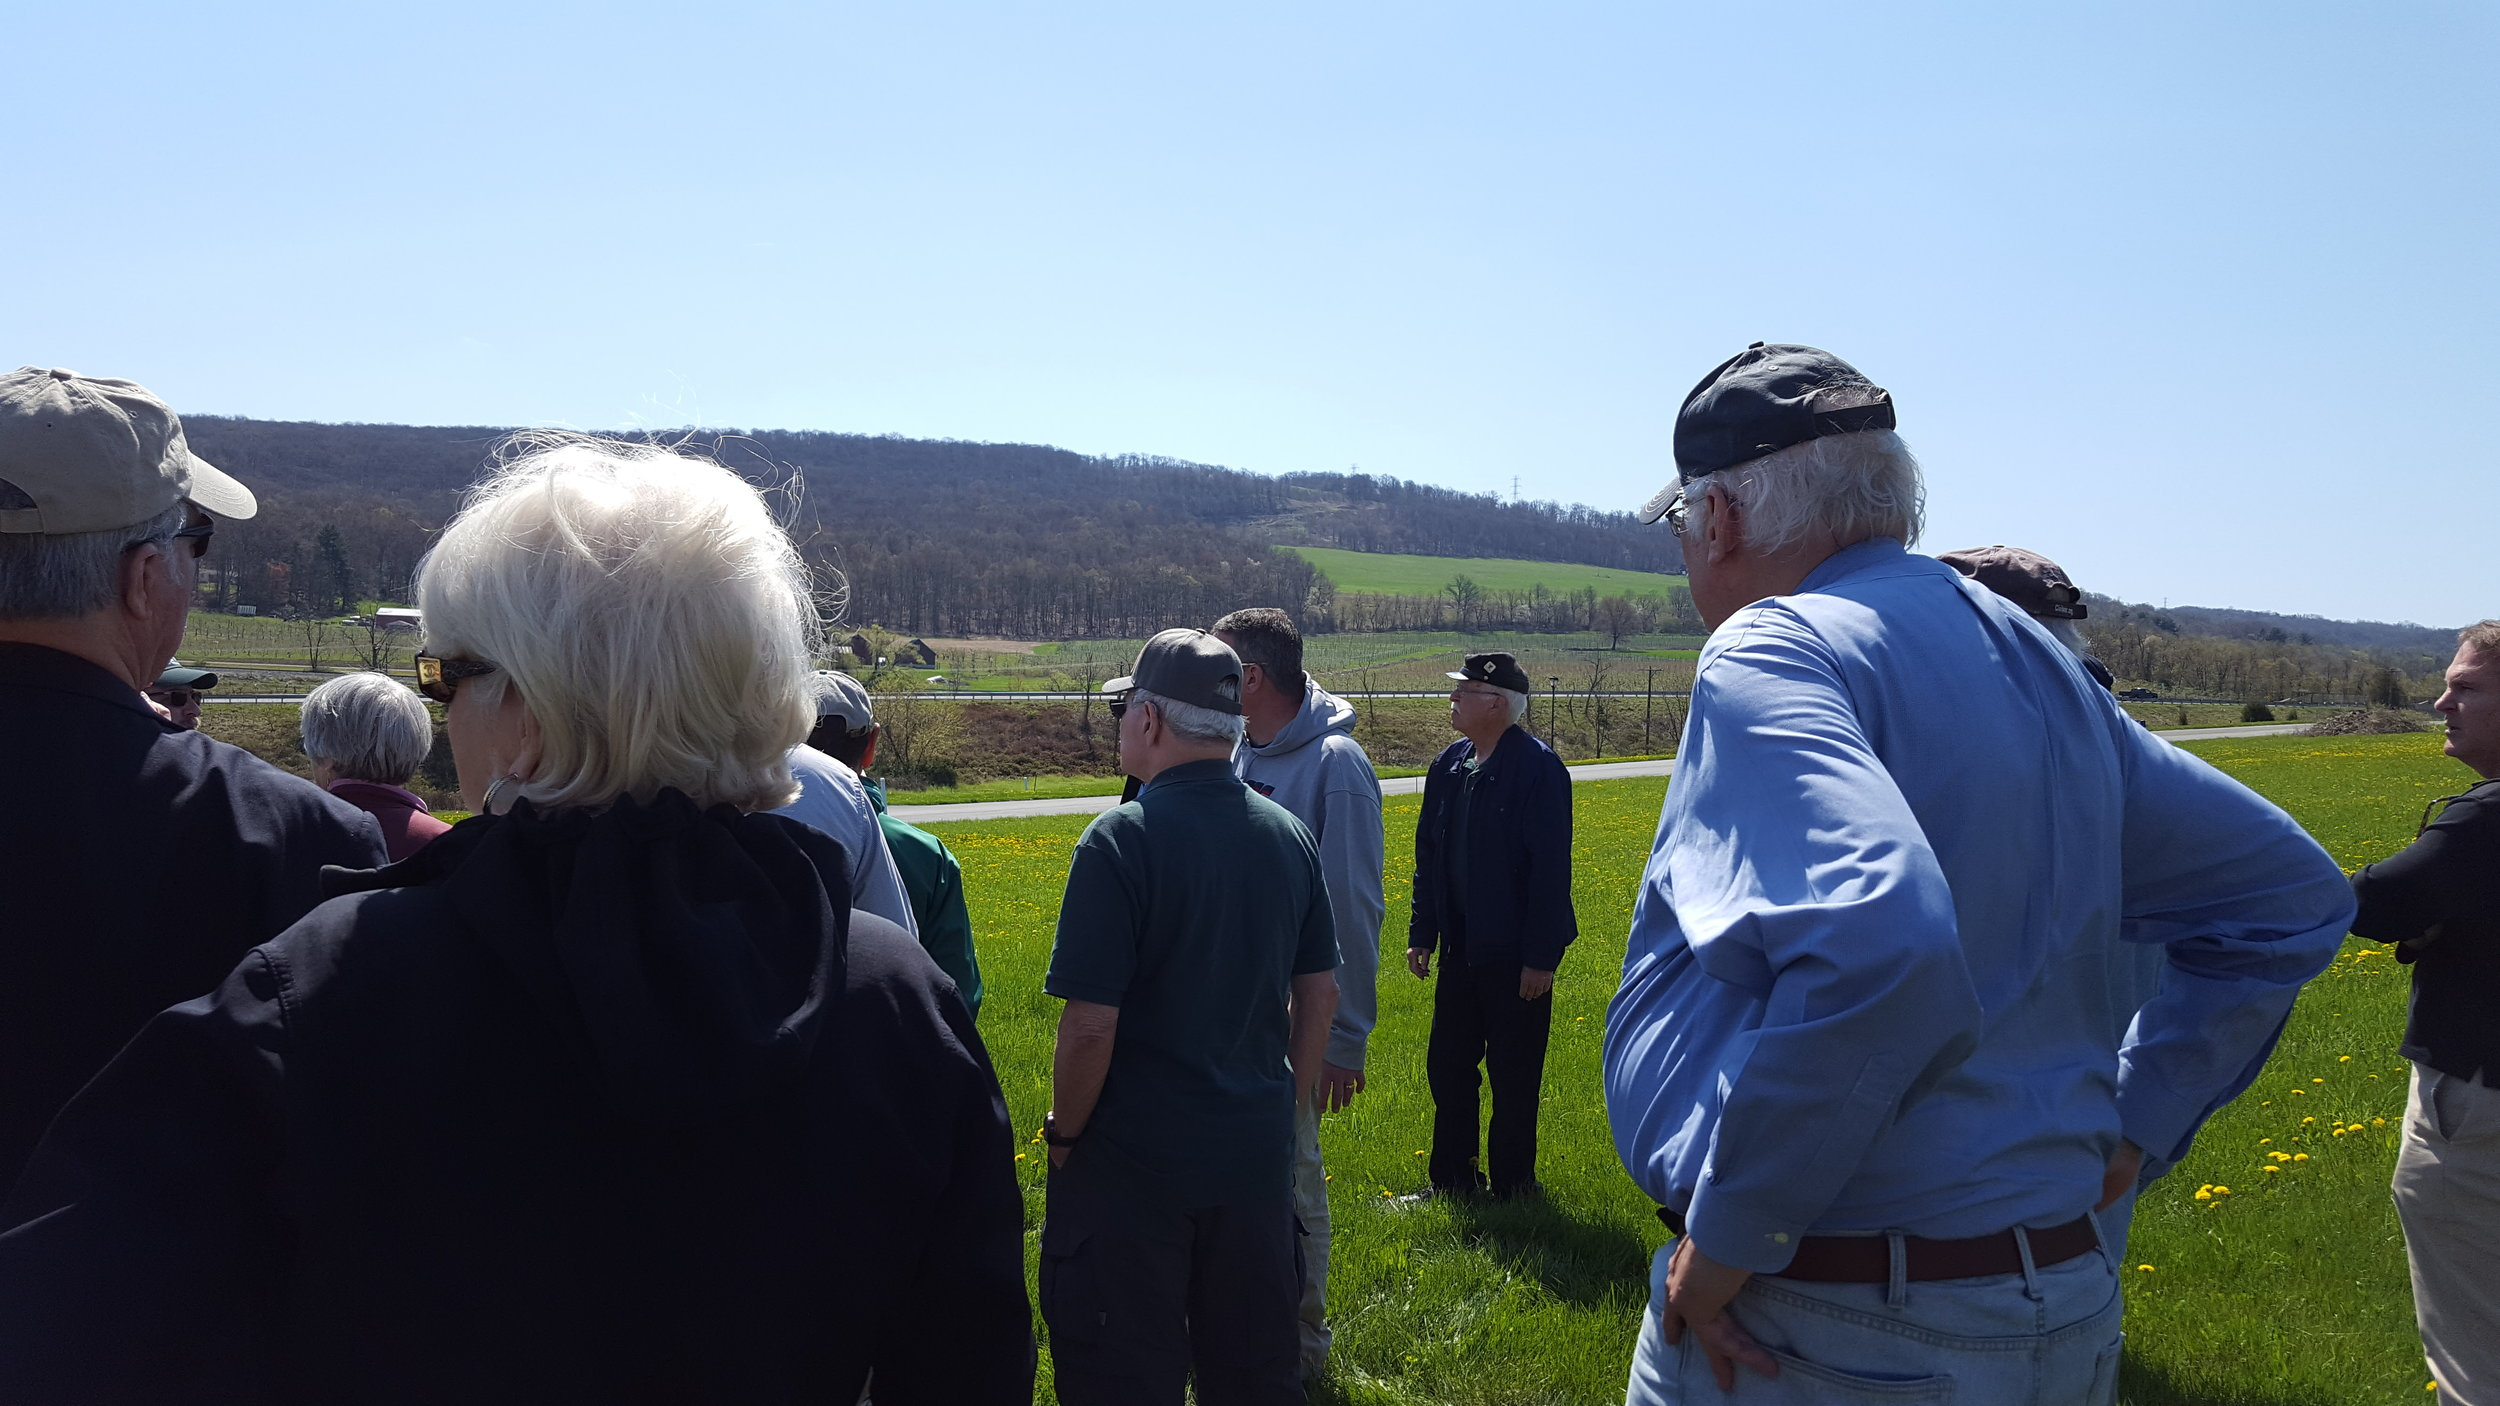 Historian Eric WIttenberg leads the Retreat From Gettysburg tour